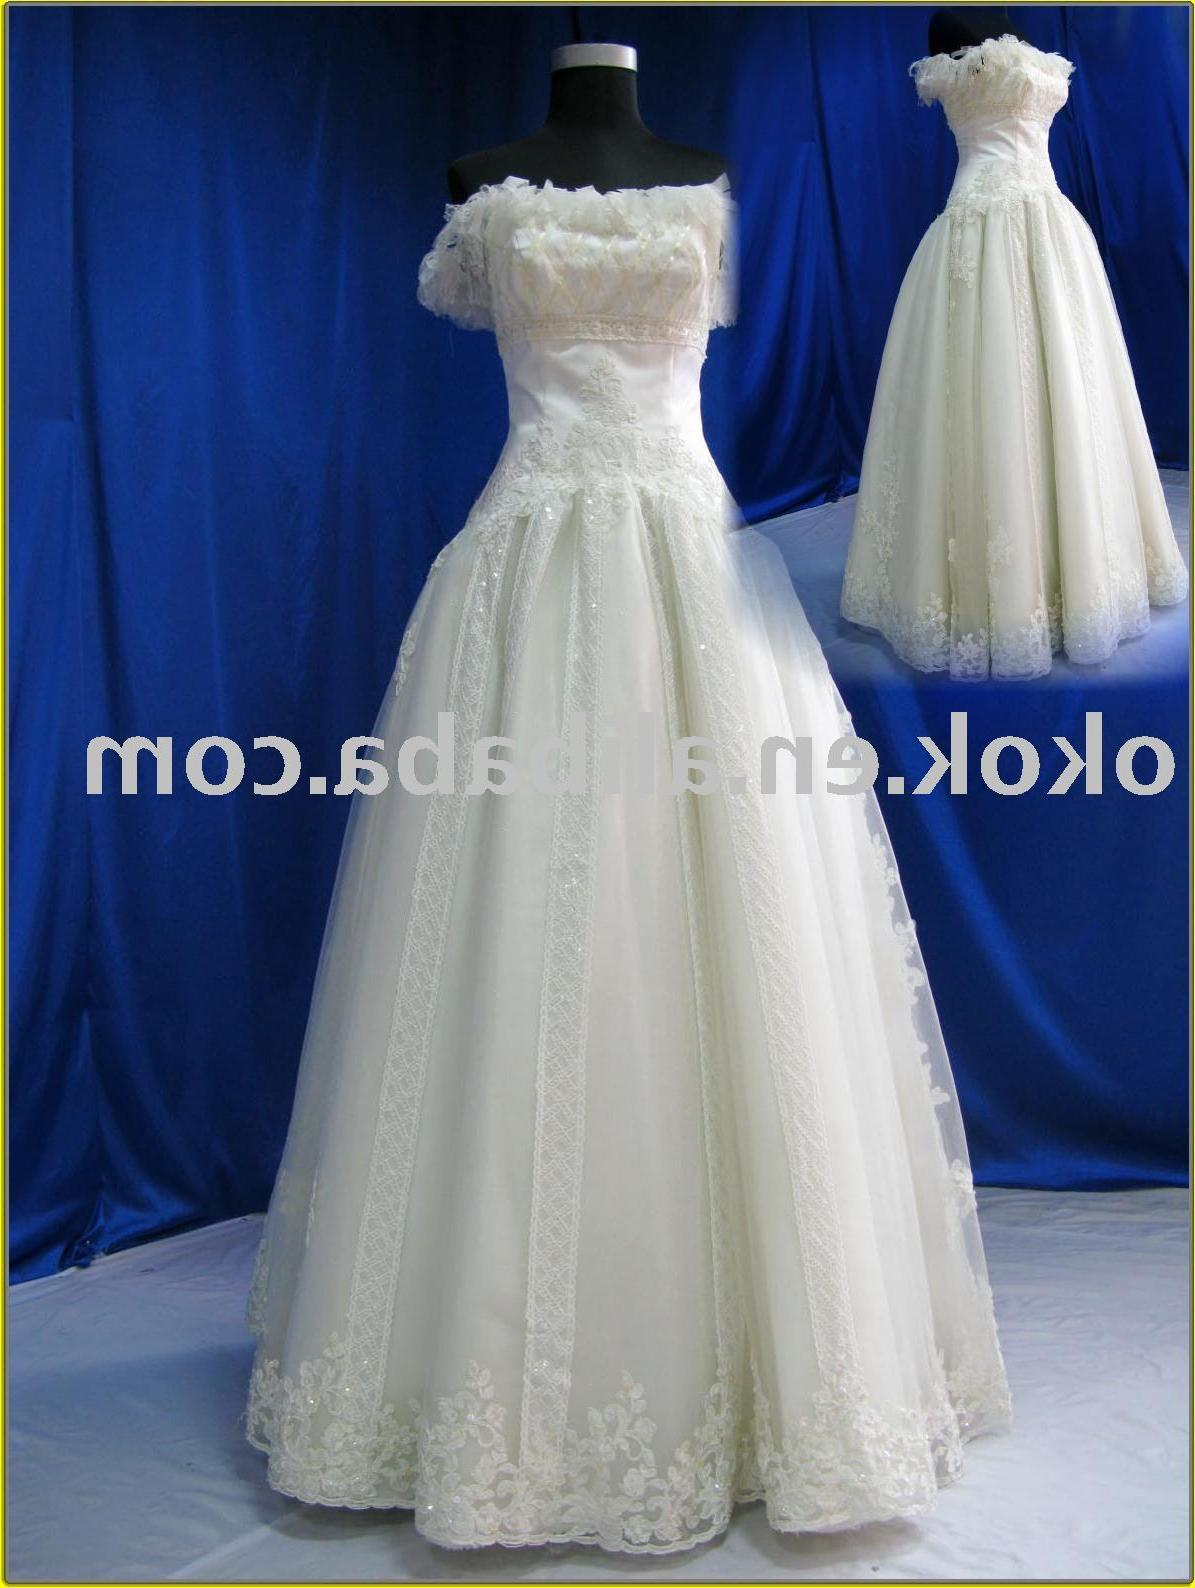 See larger image: VA037 cap sleeve Couture wedding dress